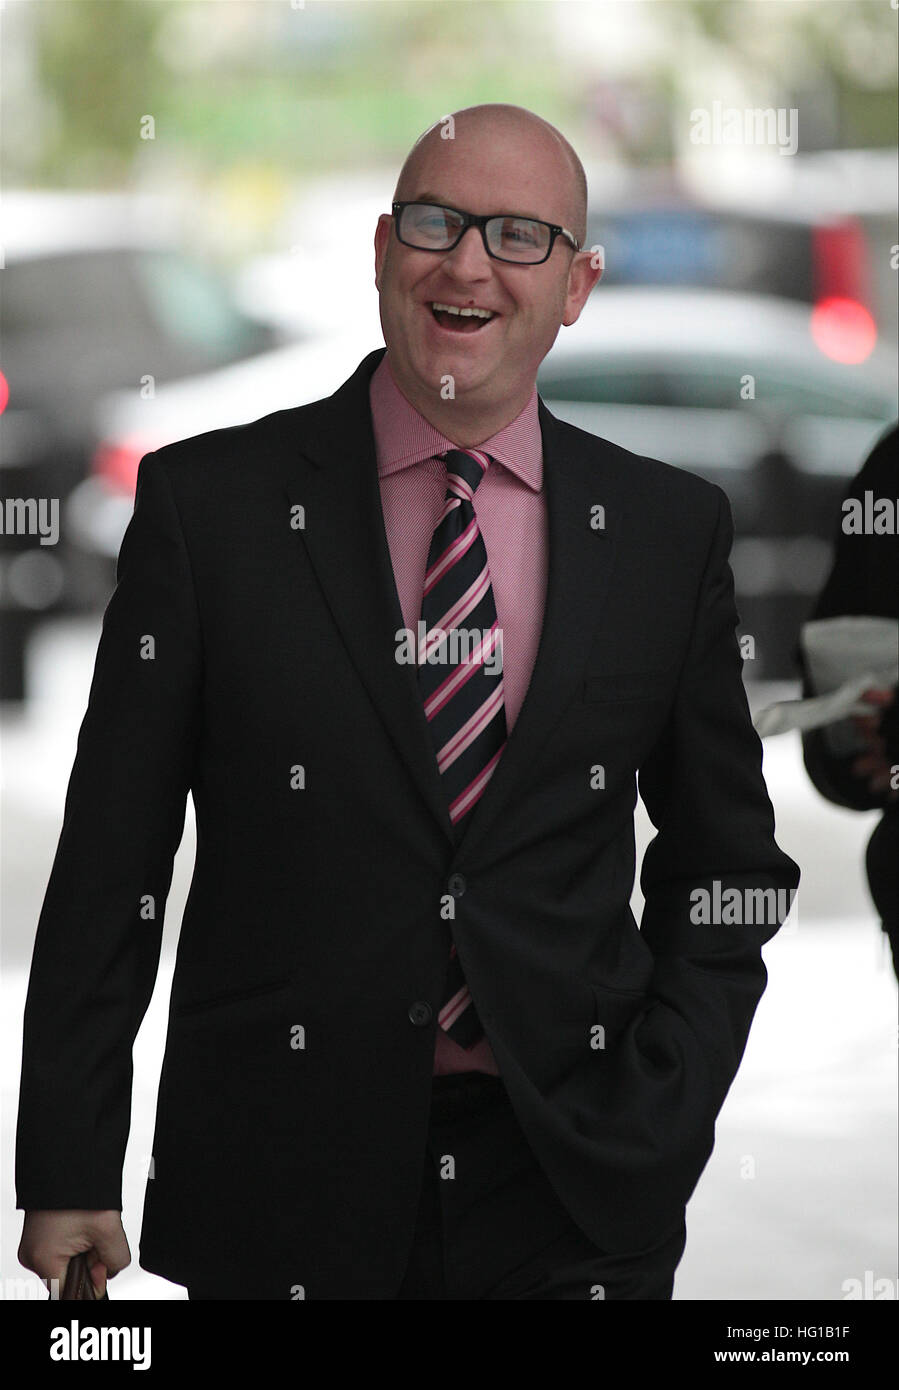 Paul Nuttall MEP  seen at the BBC Studios in London, UK , 20, Nov 2016 Stock Photo